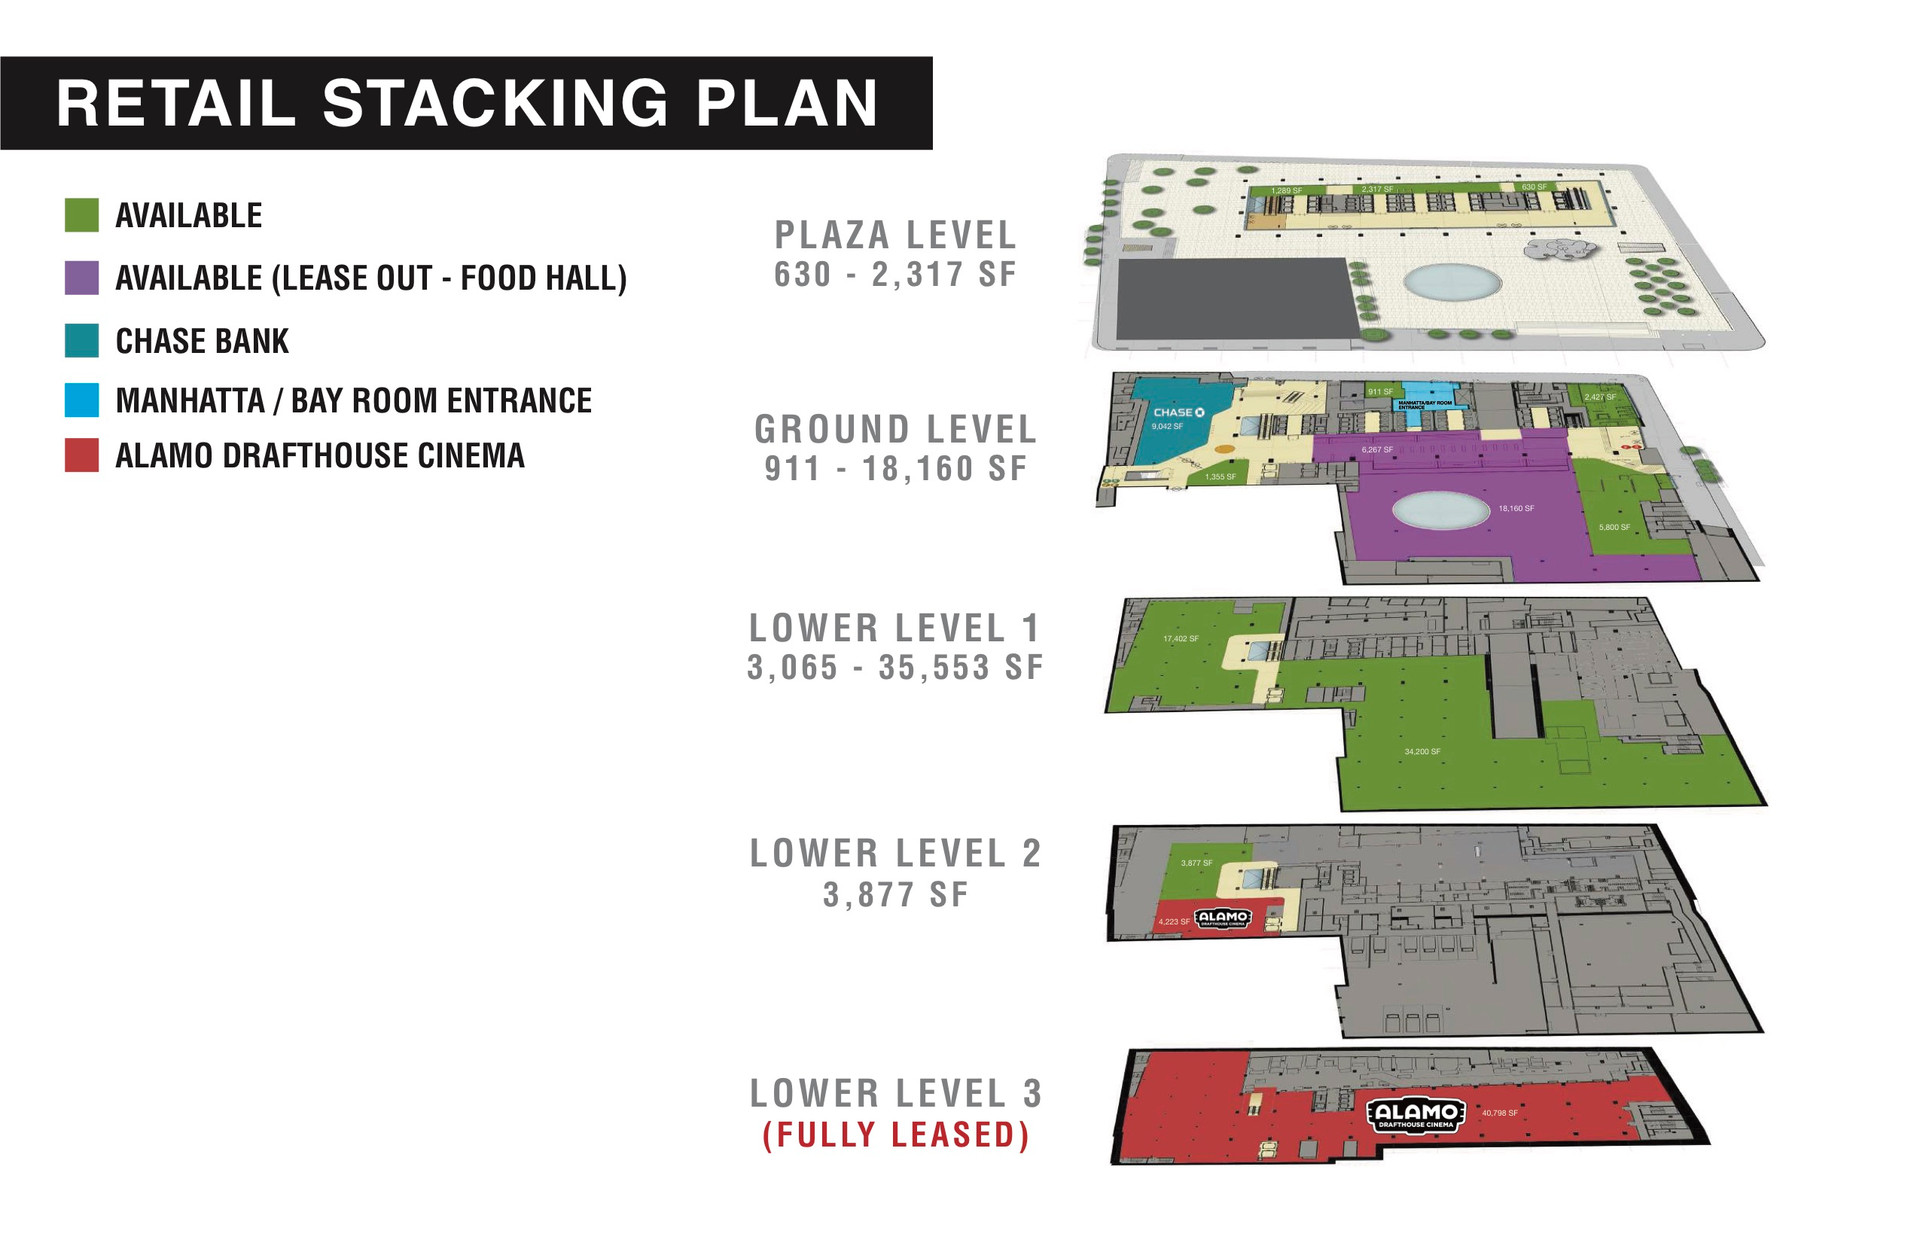 Retail Stacking Plan